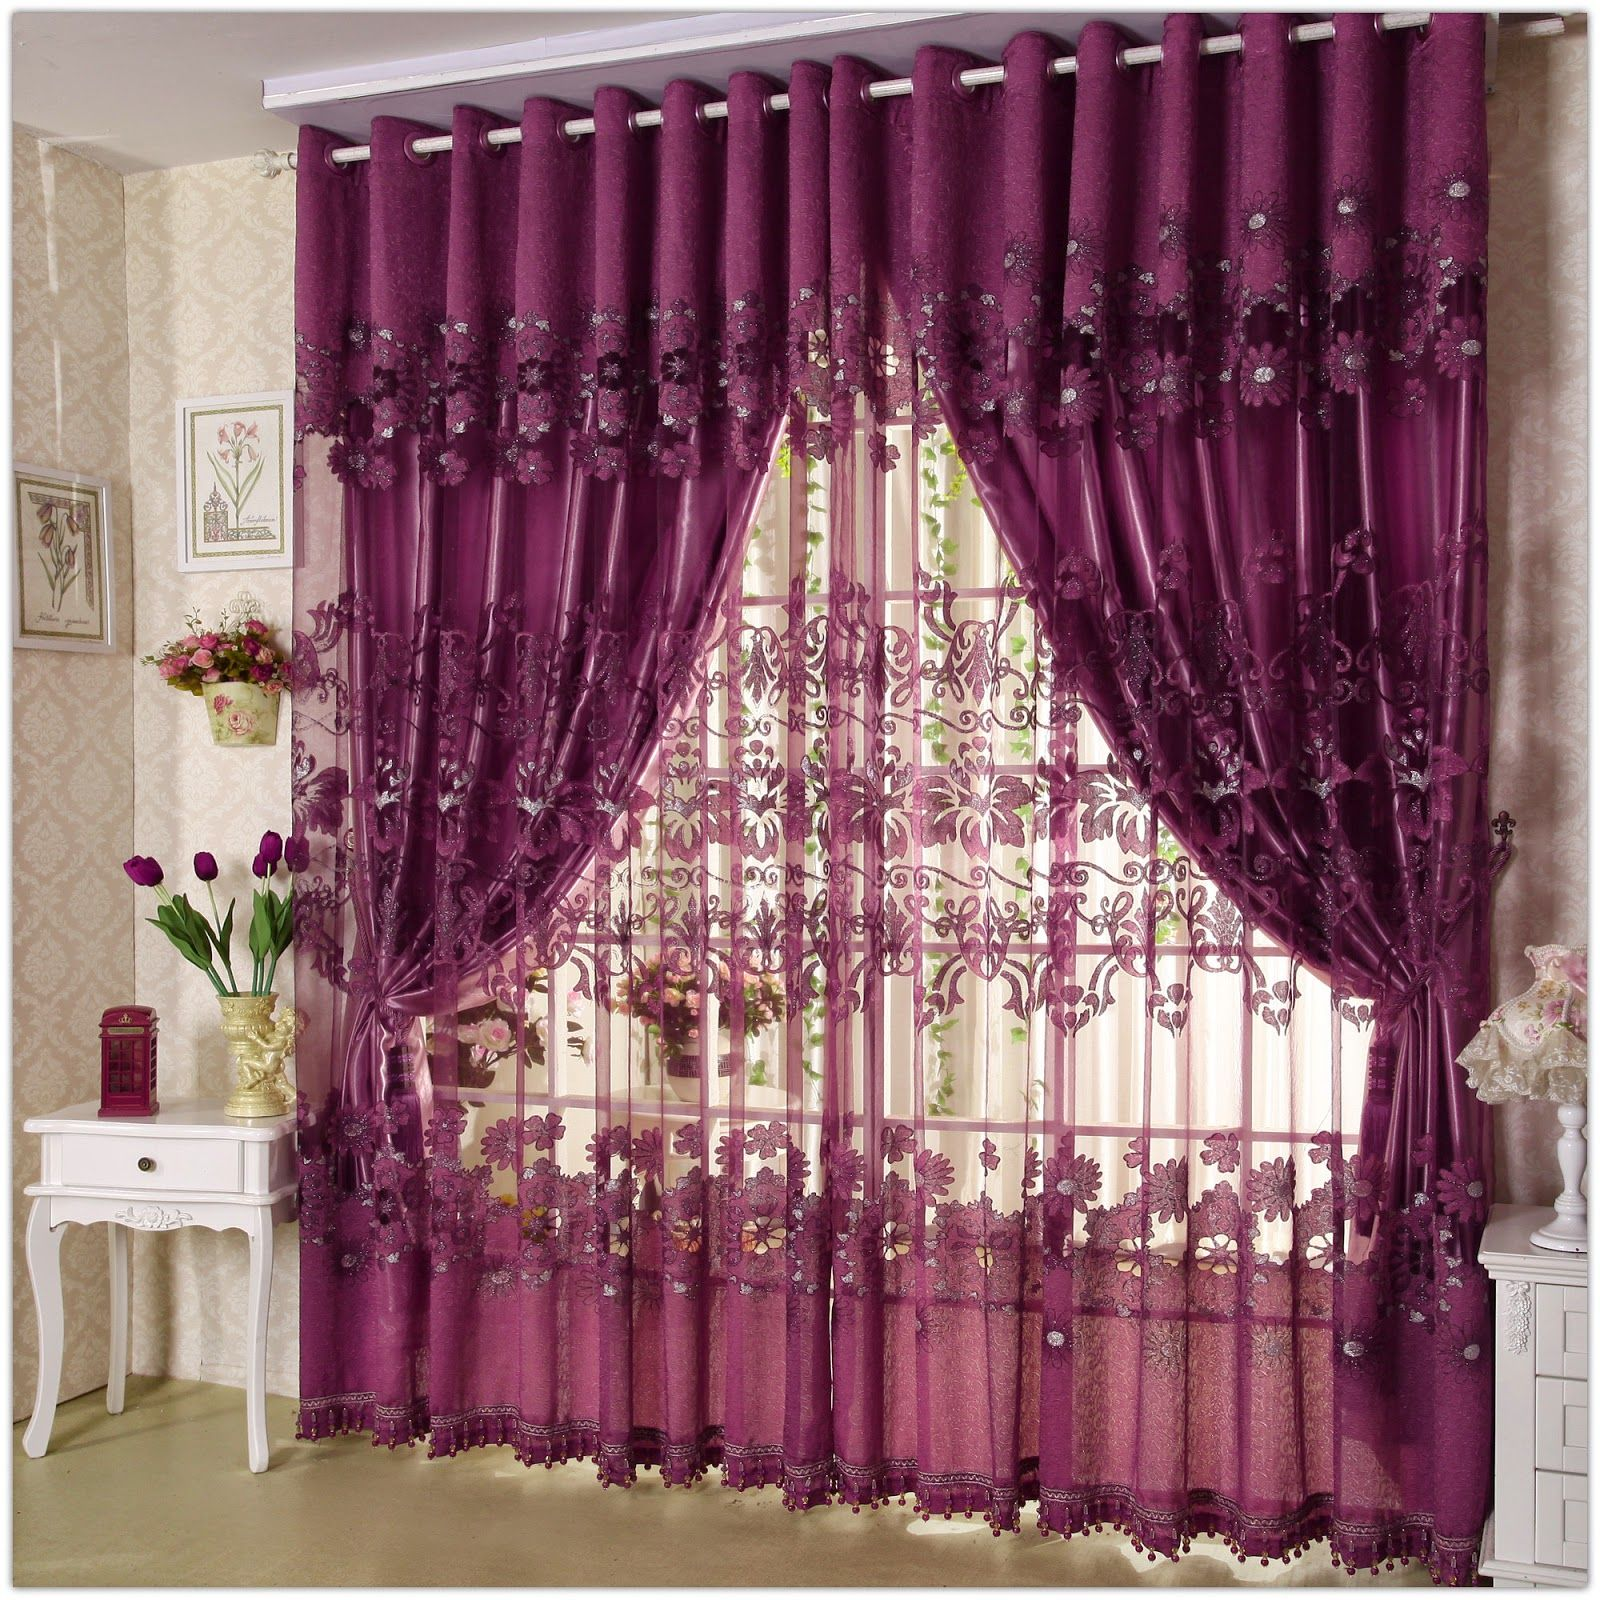 Window Curtain For Living Room Unique Curtain Designs For Living Room Window Decorations Unique